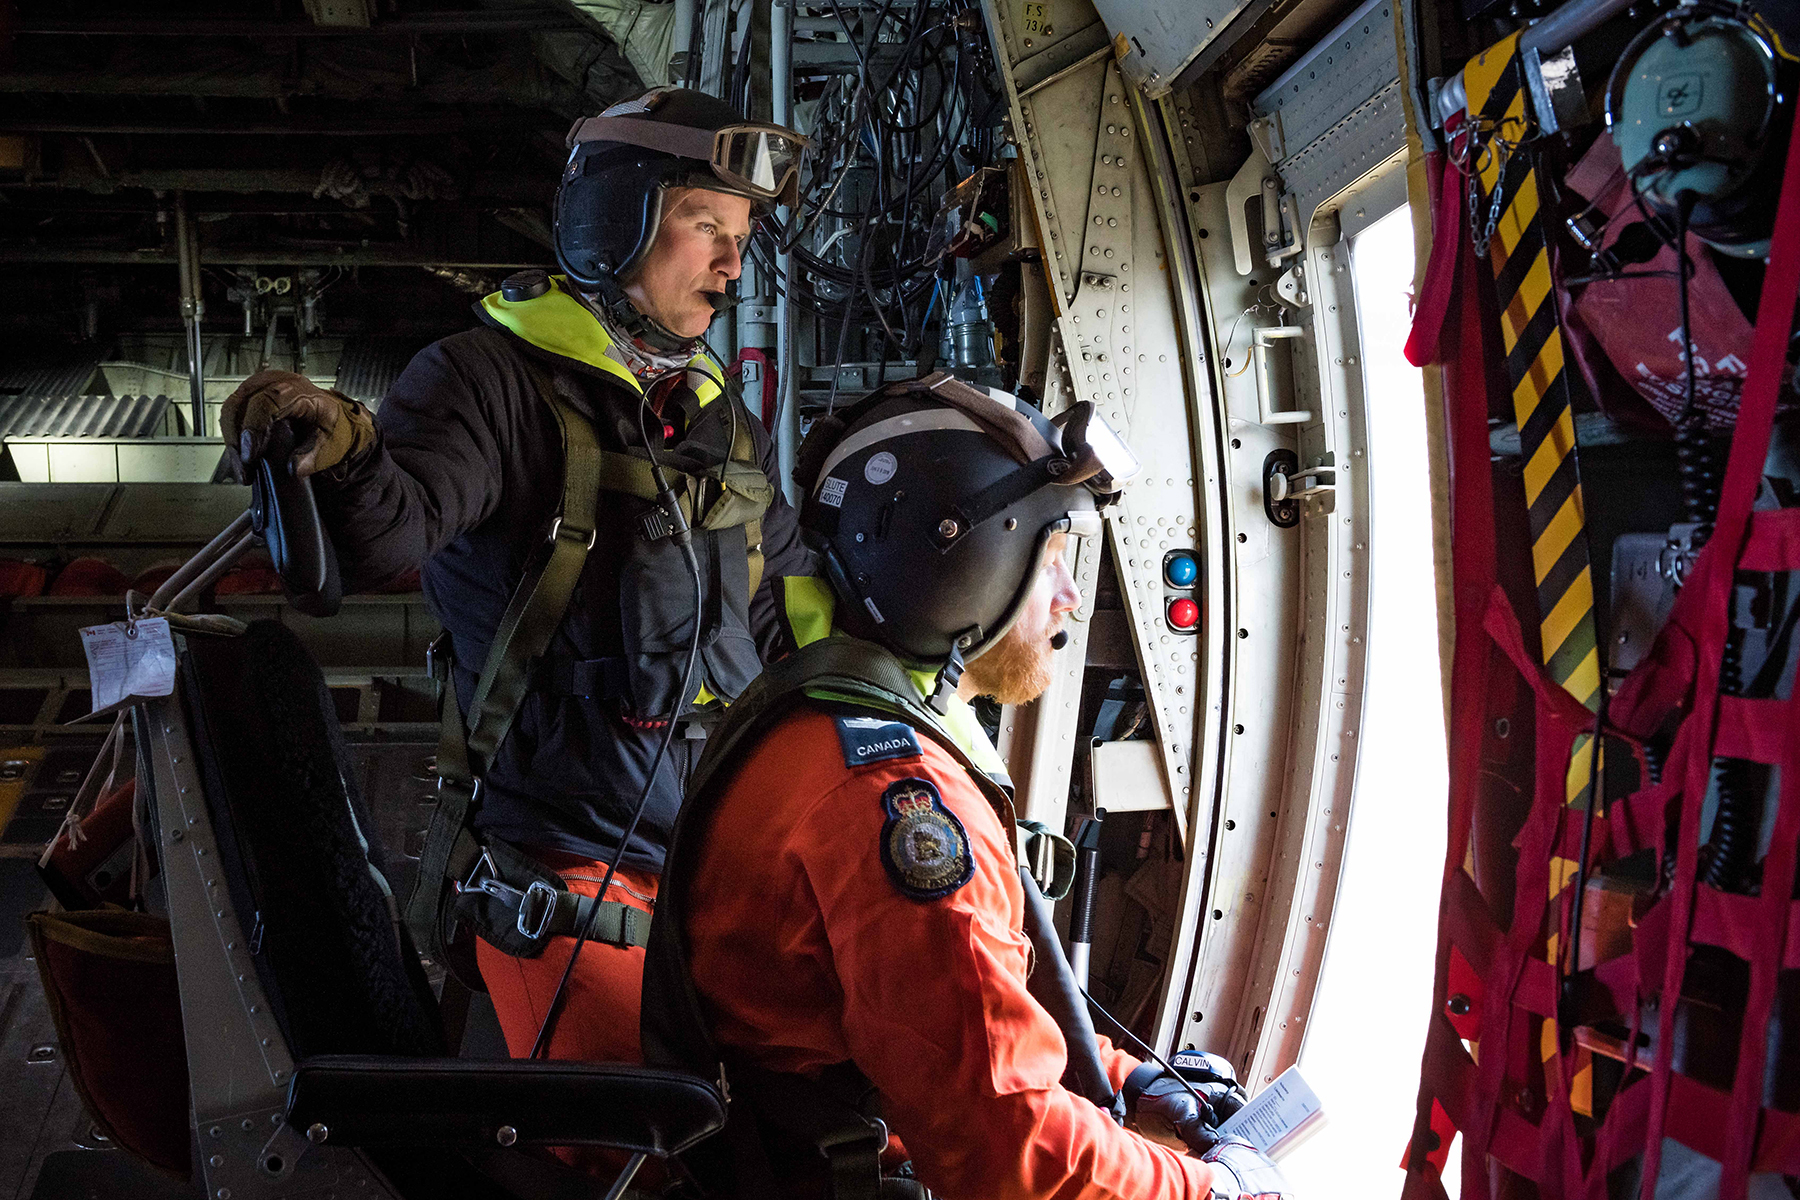 On May 7, 2019, during Chinthex 2019, held near Thunder Bay, Ontario, members of 435 Transport and Rescue Squadron survey the scene of a simulated emergency. PHOTO: Aviator Tanner Musseau-Seaward, WG2019-0191-007